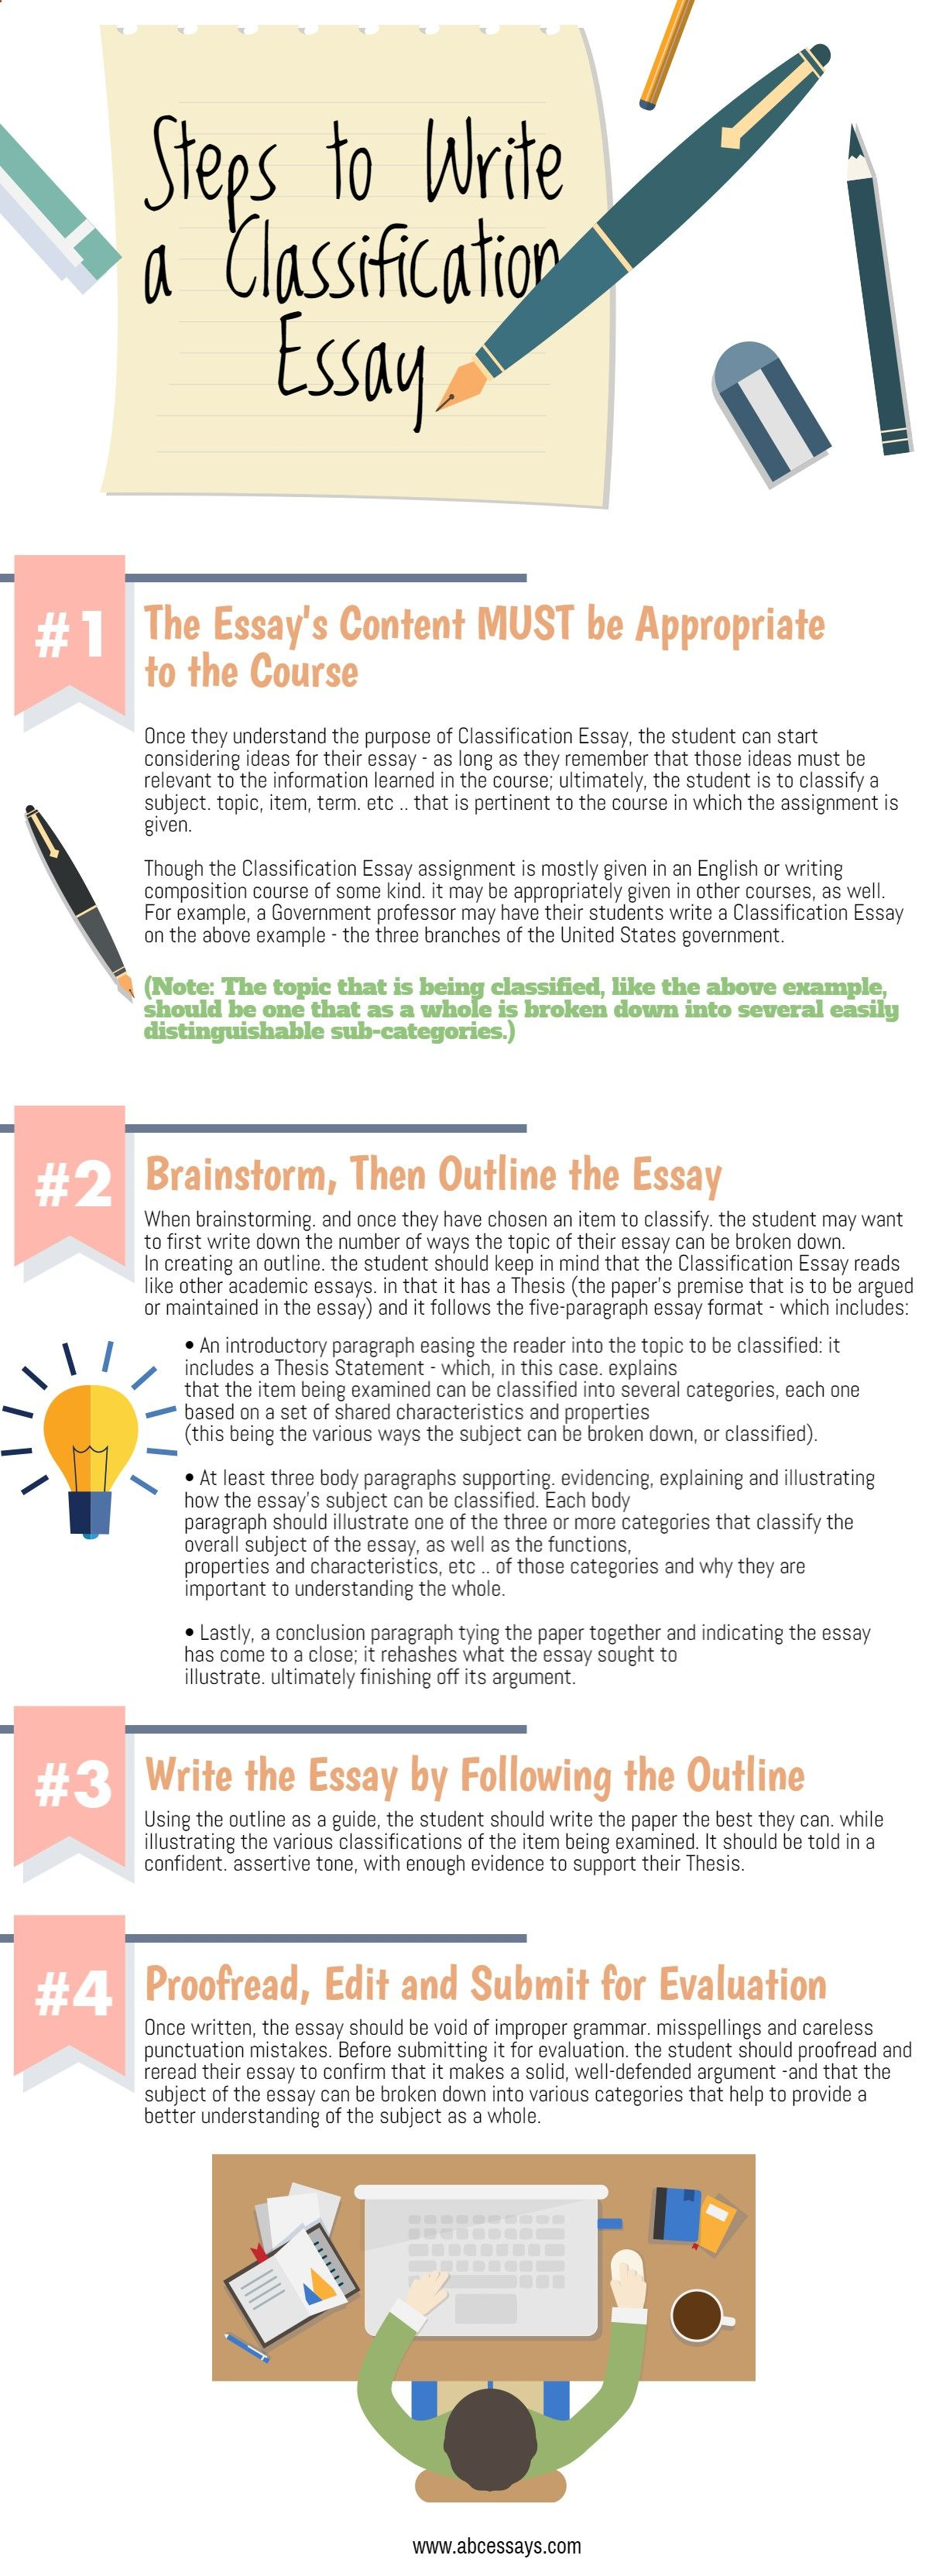 Step To Writing A Classification Essay Include Choosing Topic That S Relevant The Course Brainstorming And Outlining Topics Steps